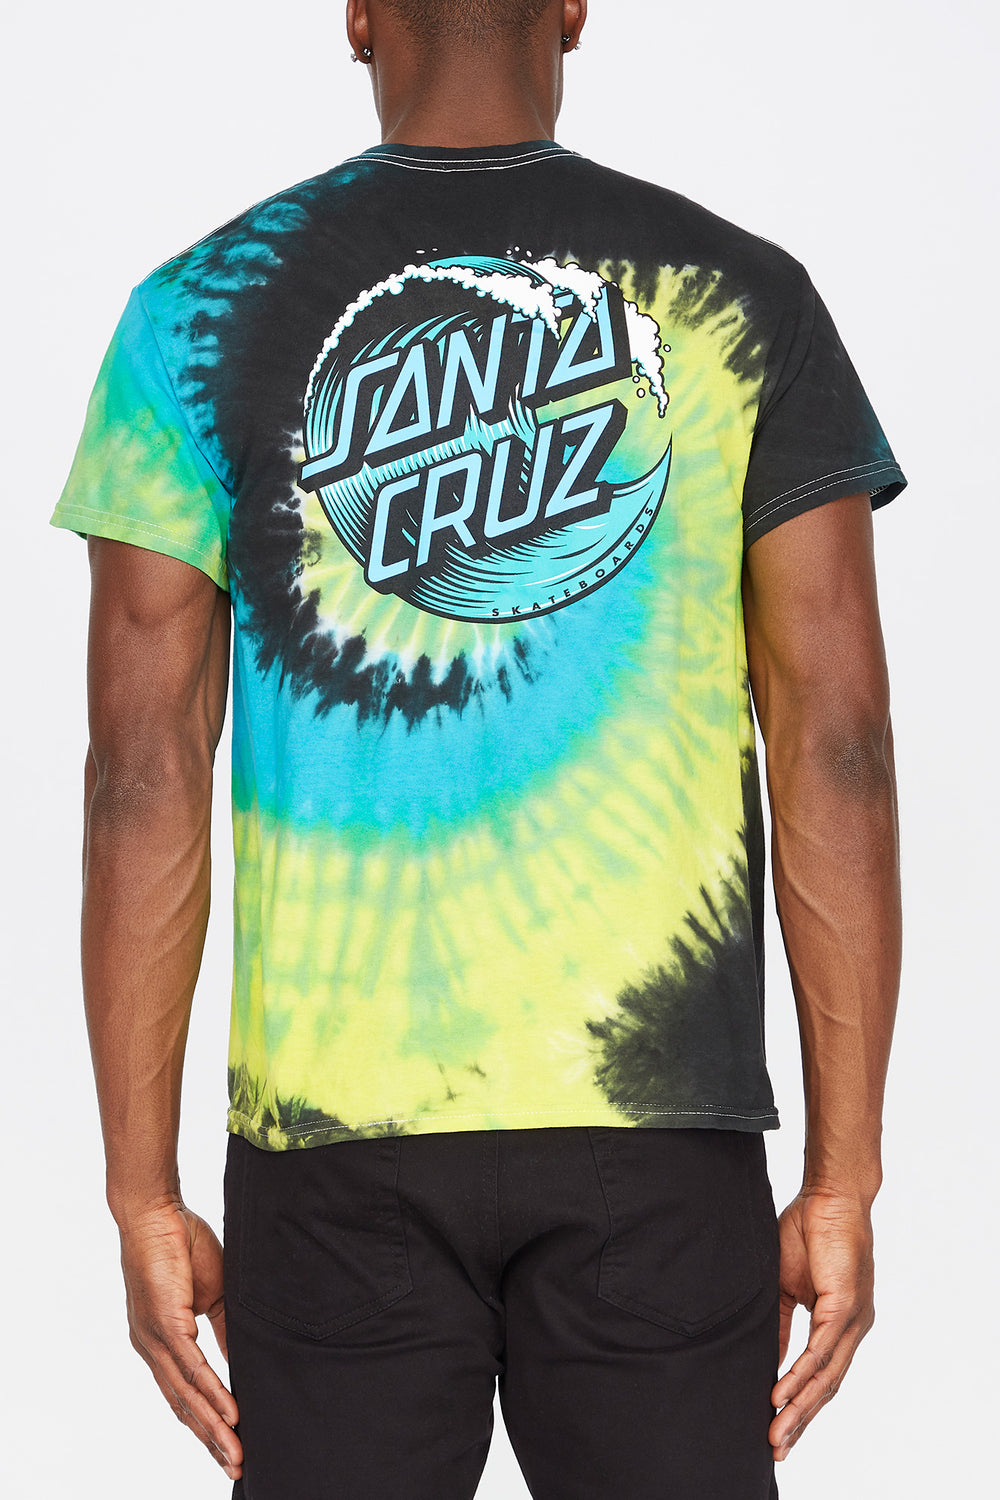 T-Shirt Tie-Dye Wave Logo Santa Cruz Multi